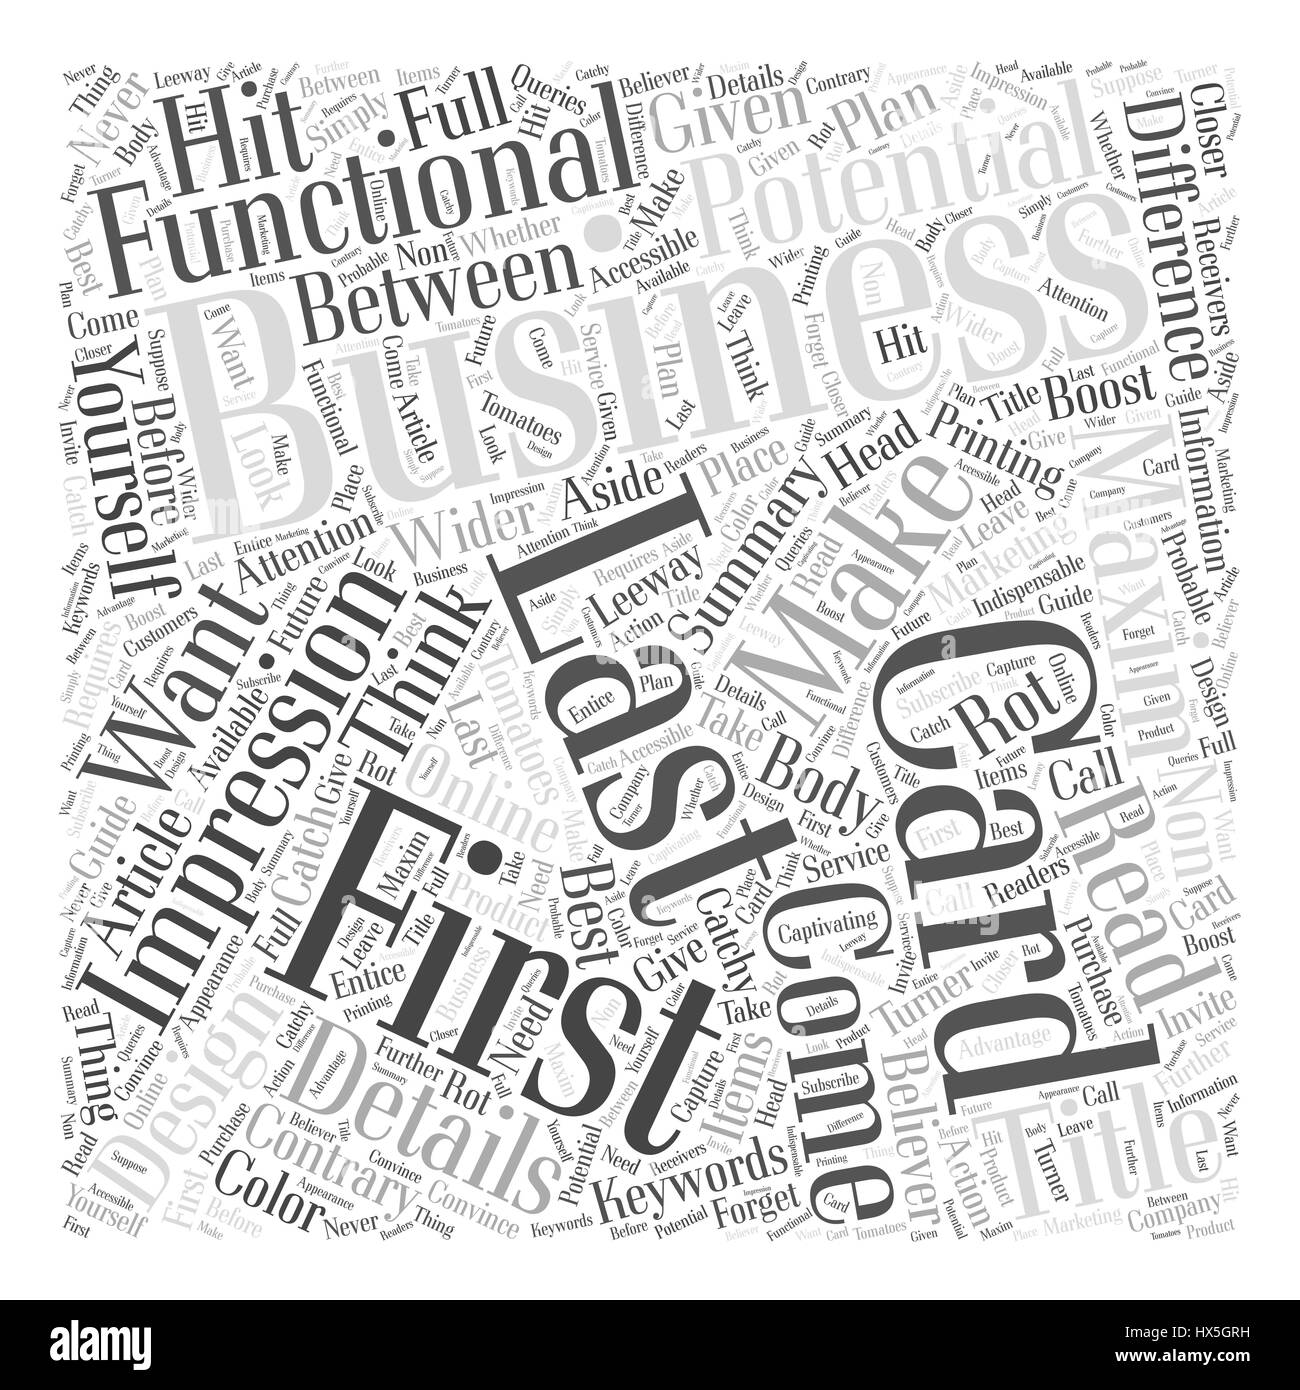 Business card s lasting first impression word cloud concept stock business card s lasting first impression word cloud concept reheart Choice Image